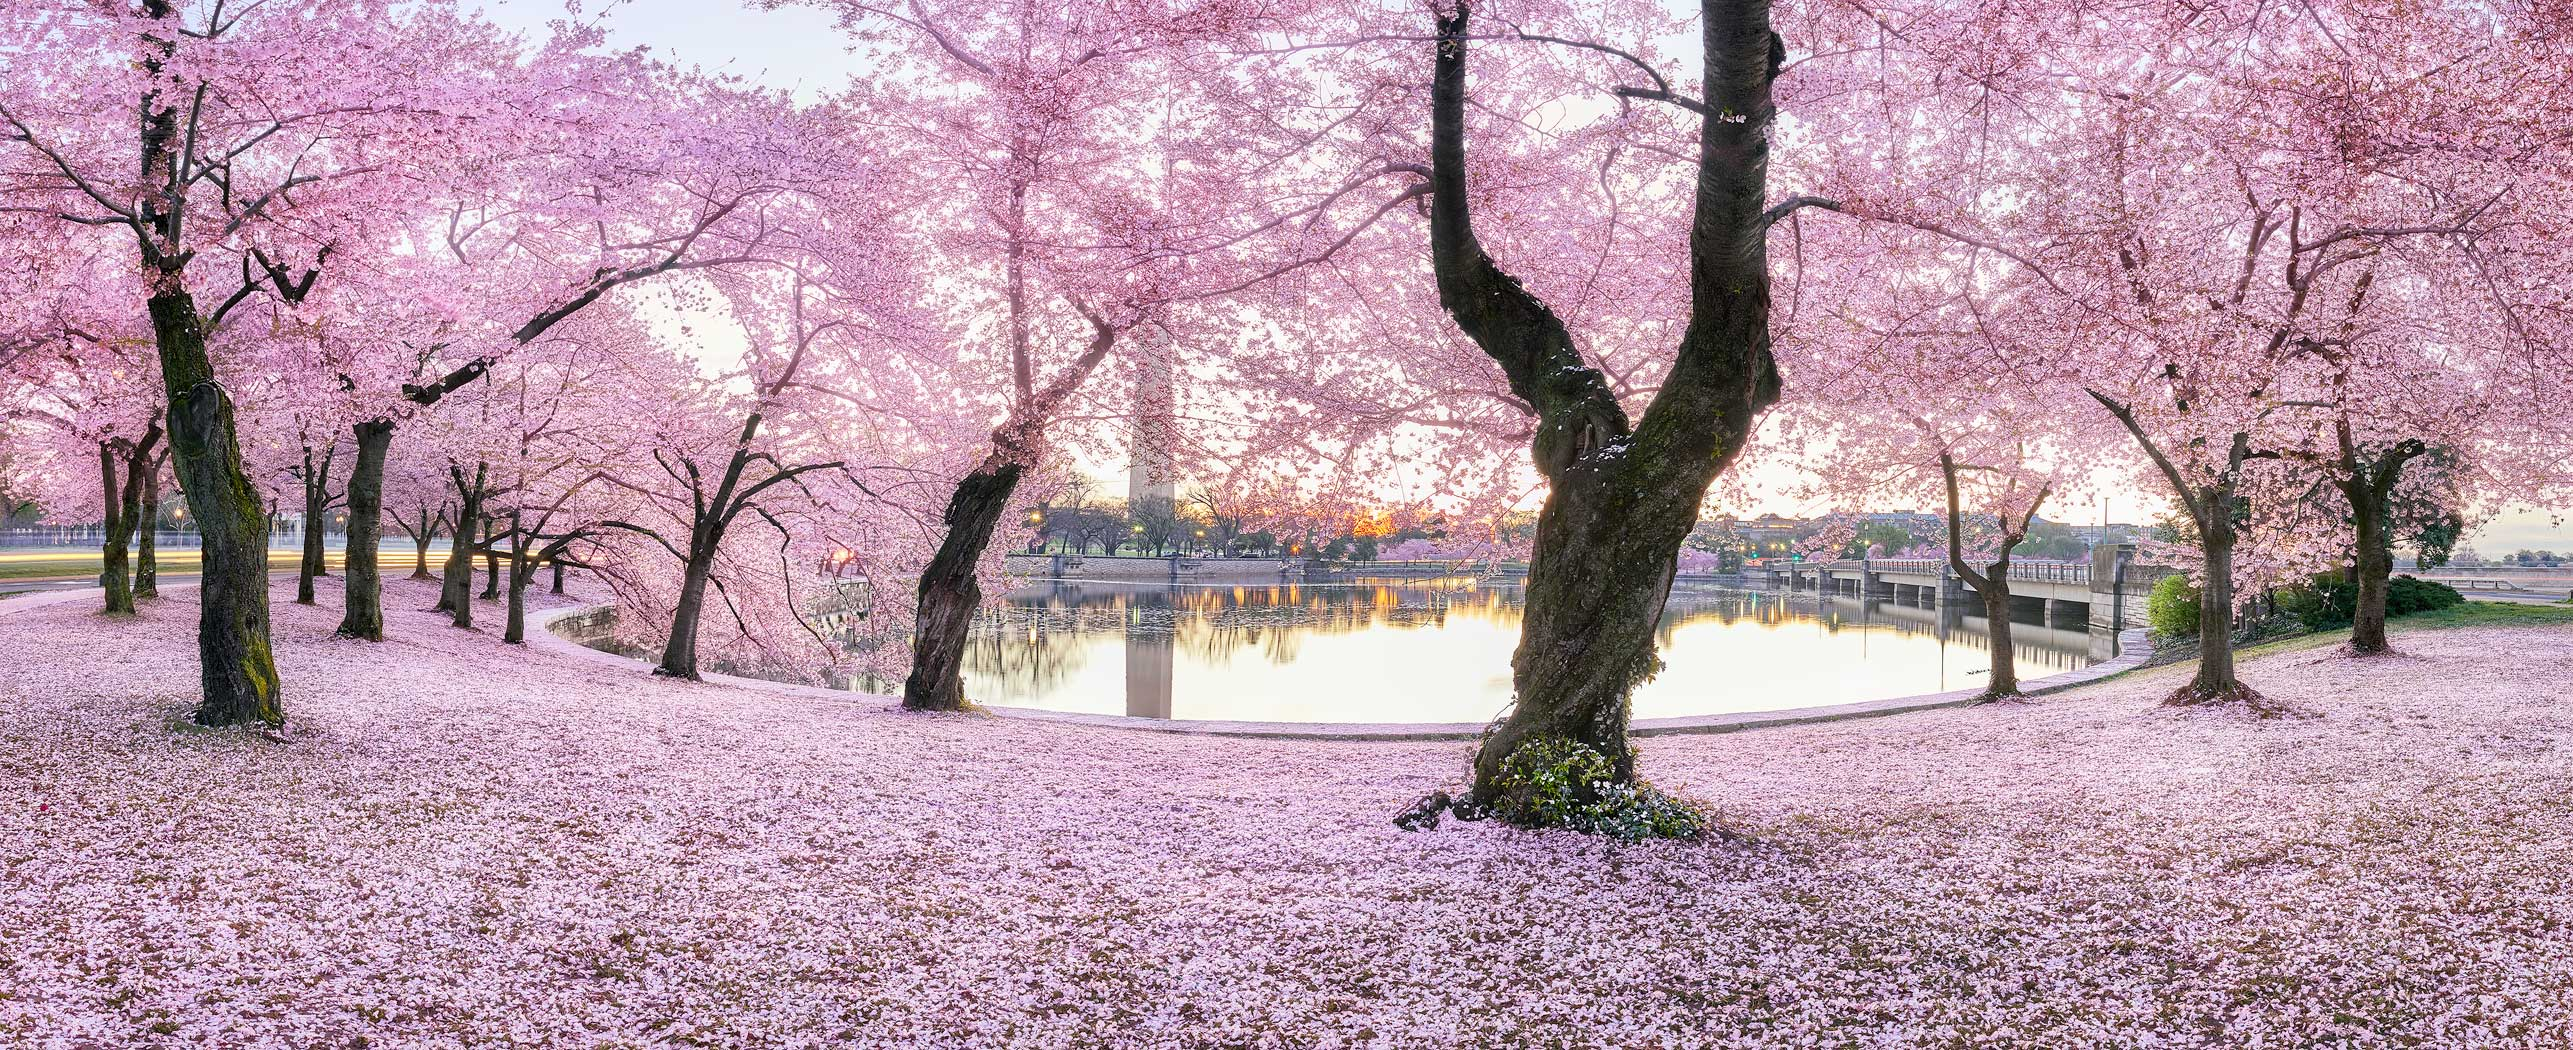 Fall For You, Washington DC, cherry blossoms, blossoms, spring, pink, tidal basin, panoramic, blooms monument, bernard chen, timescapes, photo